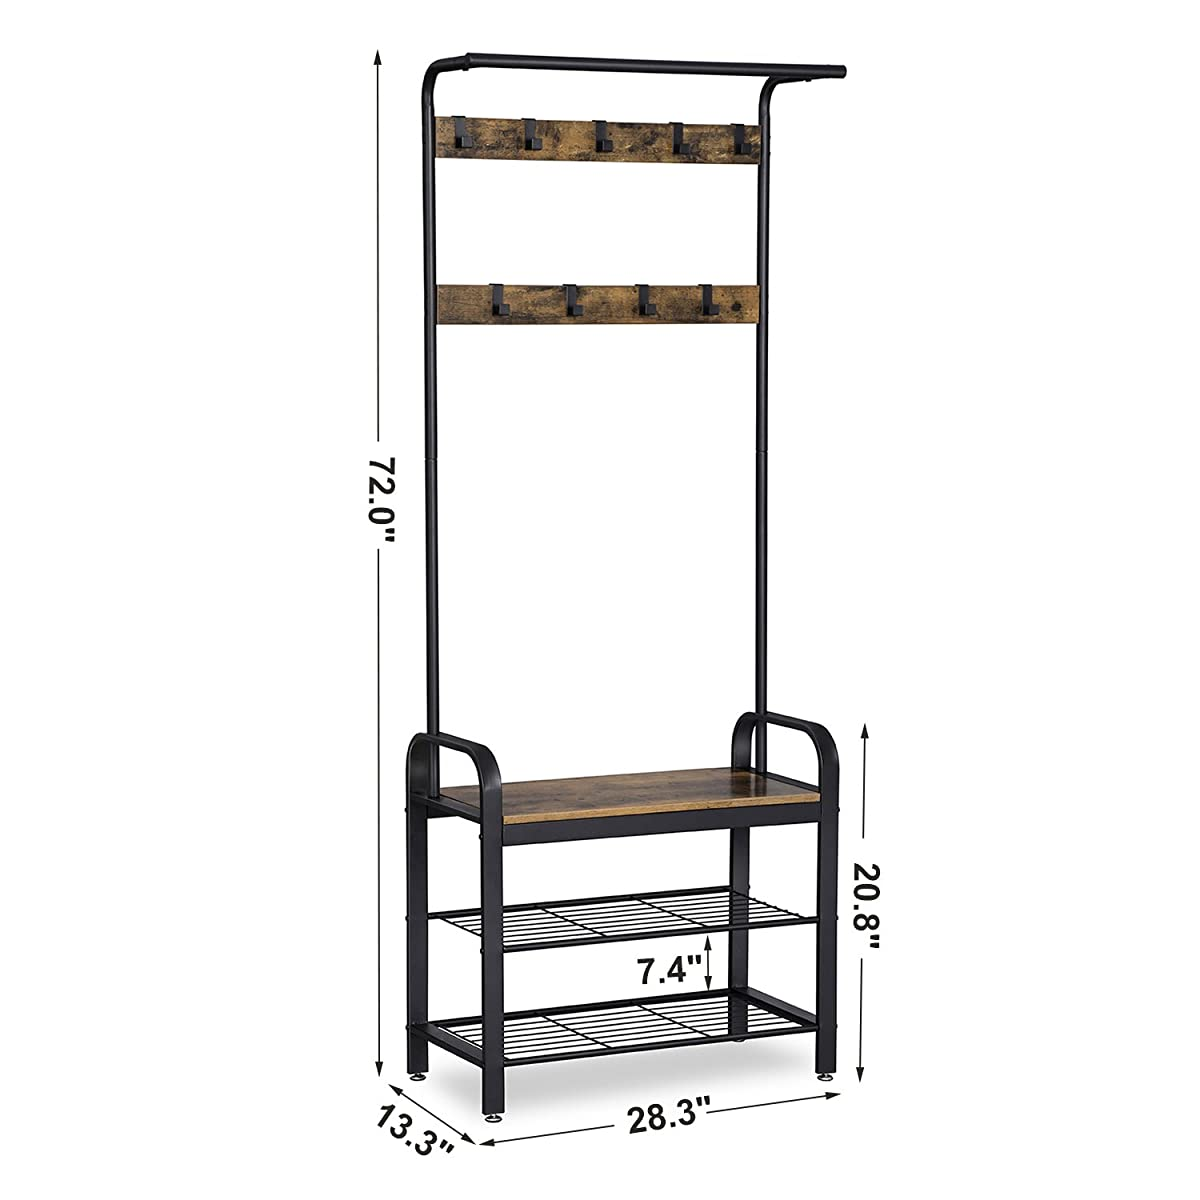 SONGMICS Vintage Coat Shoe Rack, Hall Tree Entryway Storage Shelf, Wood Look Accent Furniture with Metal frame, 3 in 1 Design, Easy Assembly UHSR40B